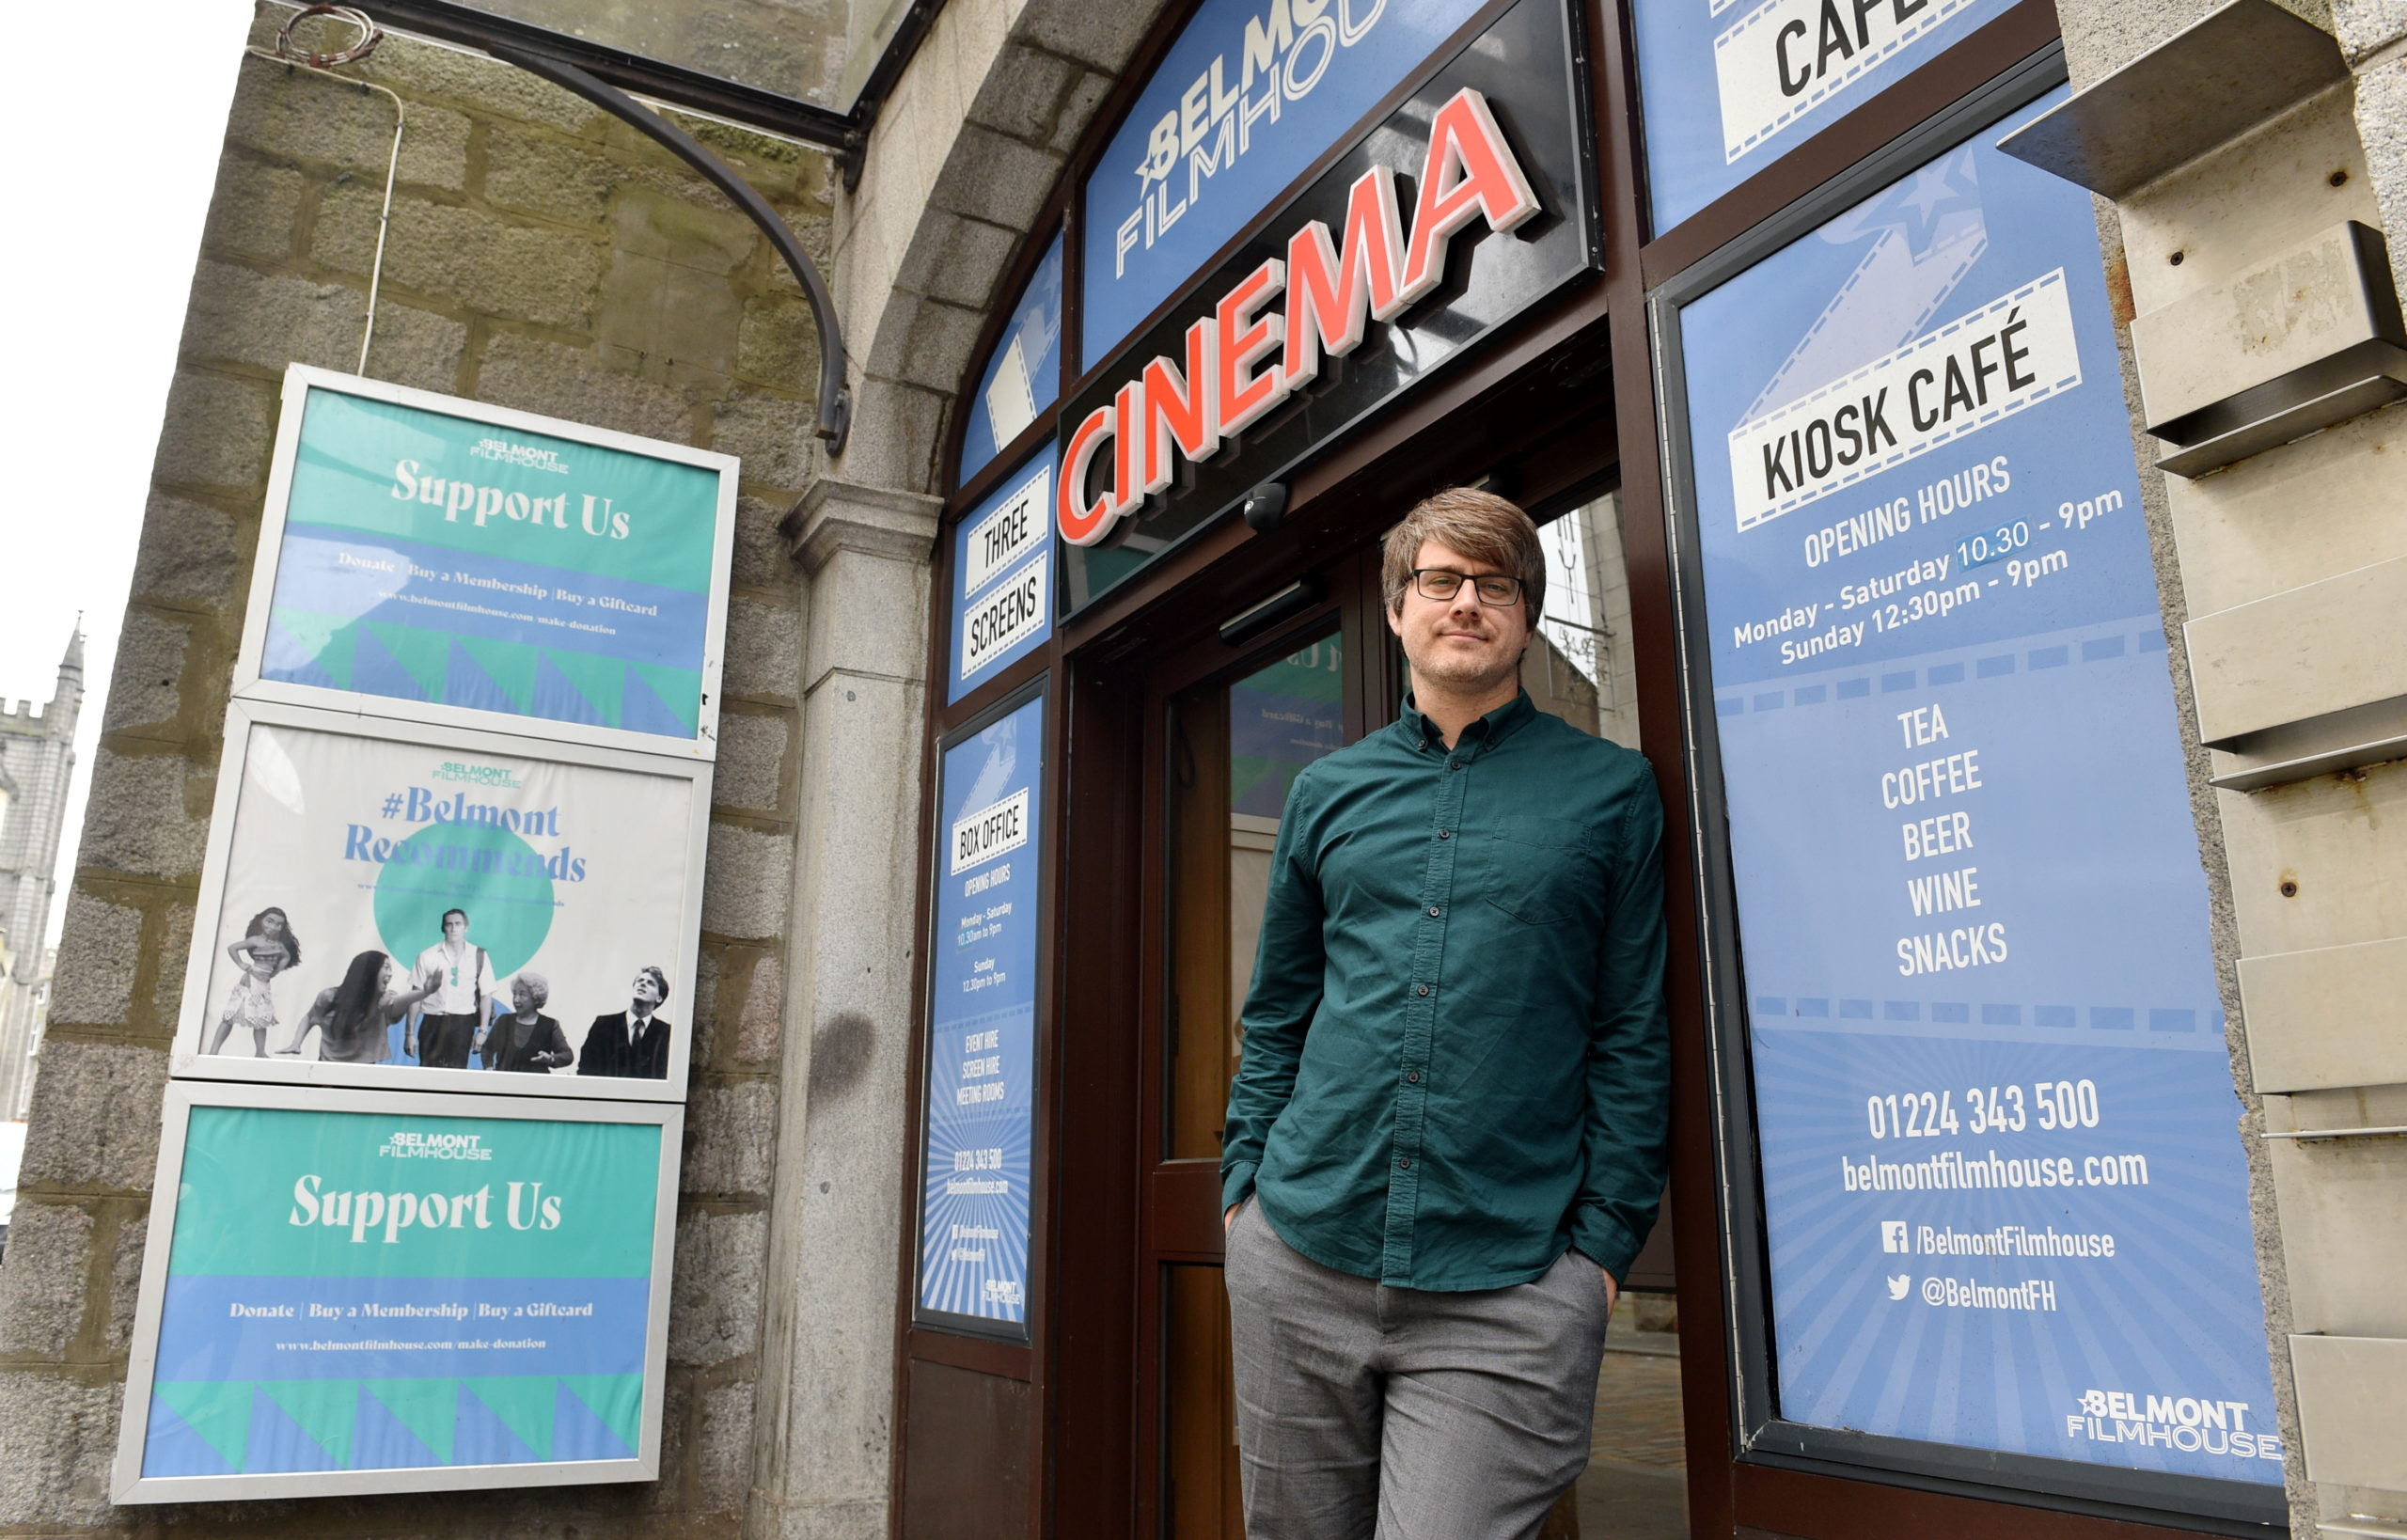 Cinema manager Colin Farquhar outside the Belmont Filmhouse. Picture by Darrell Benns